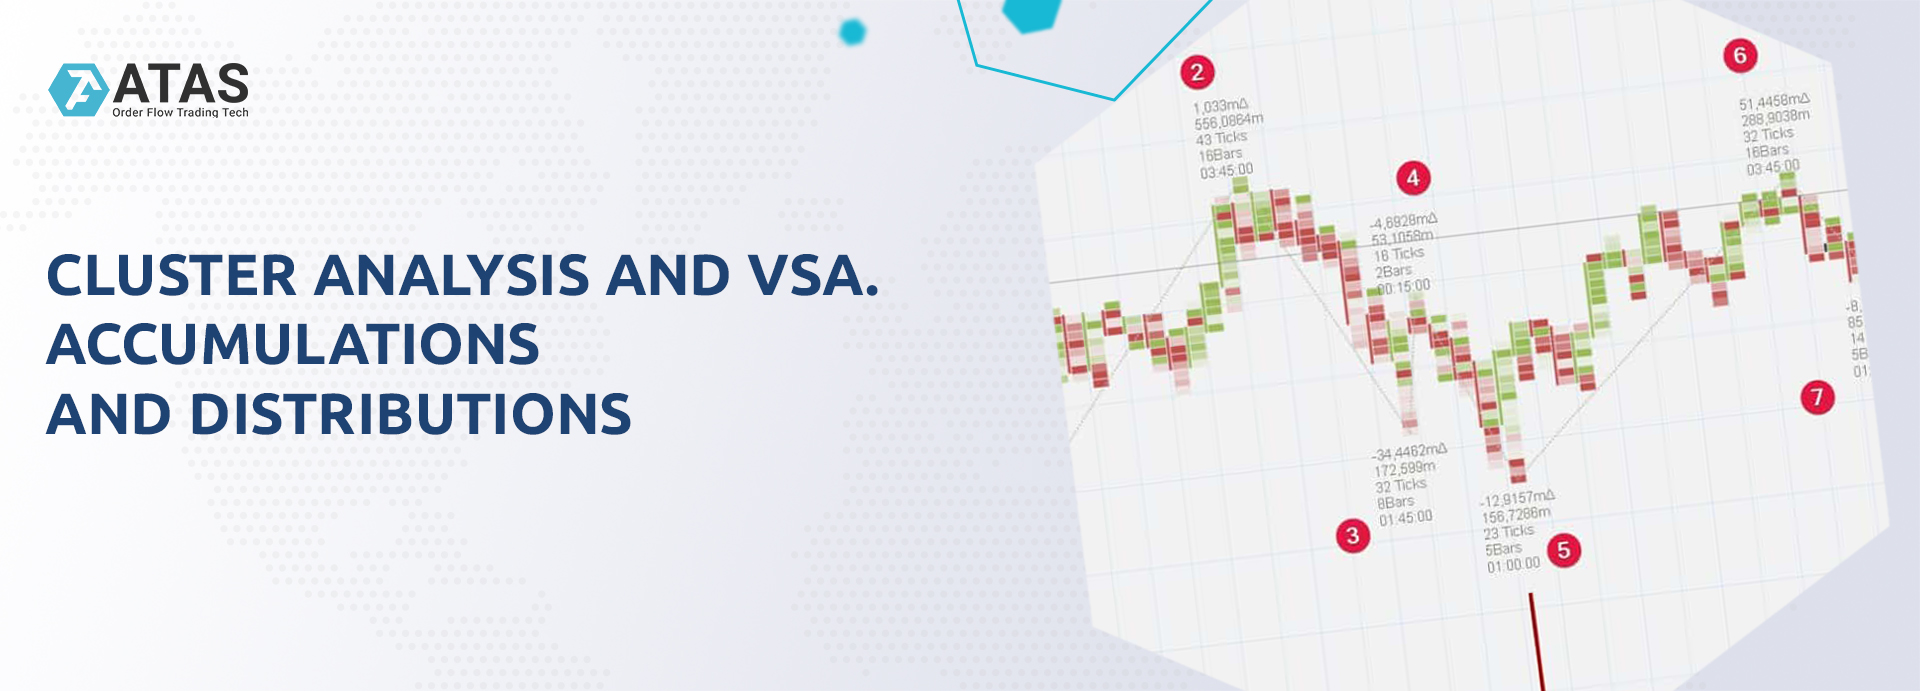 CLUSTER ANALYSIS AND VSA. ACCUMULATIONS AND DISTRIBUTIONS